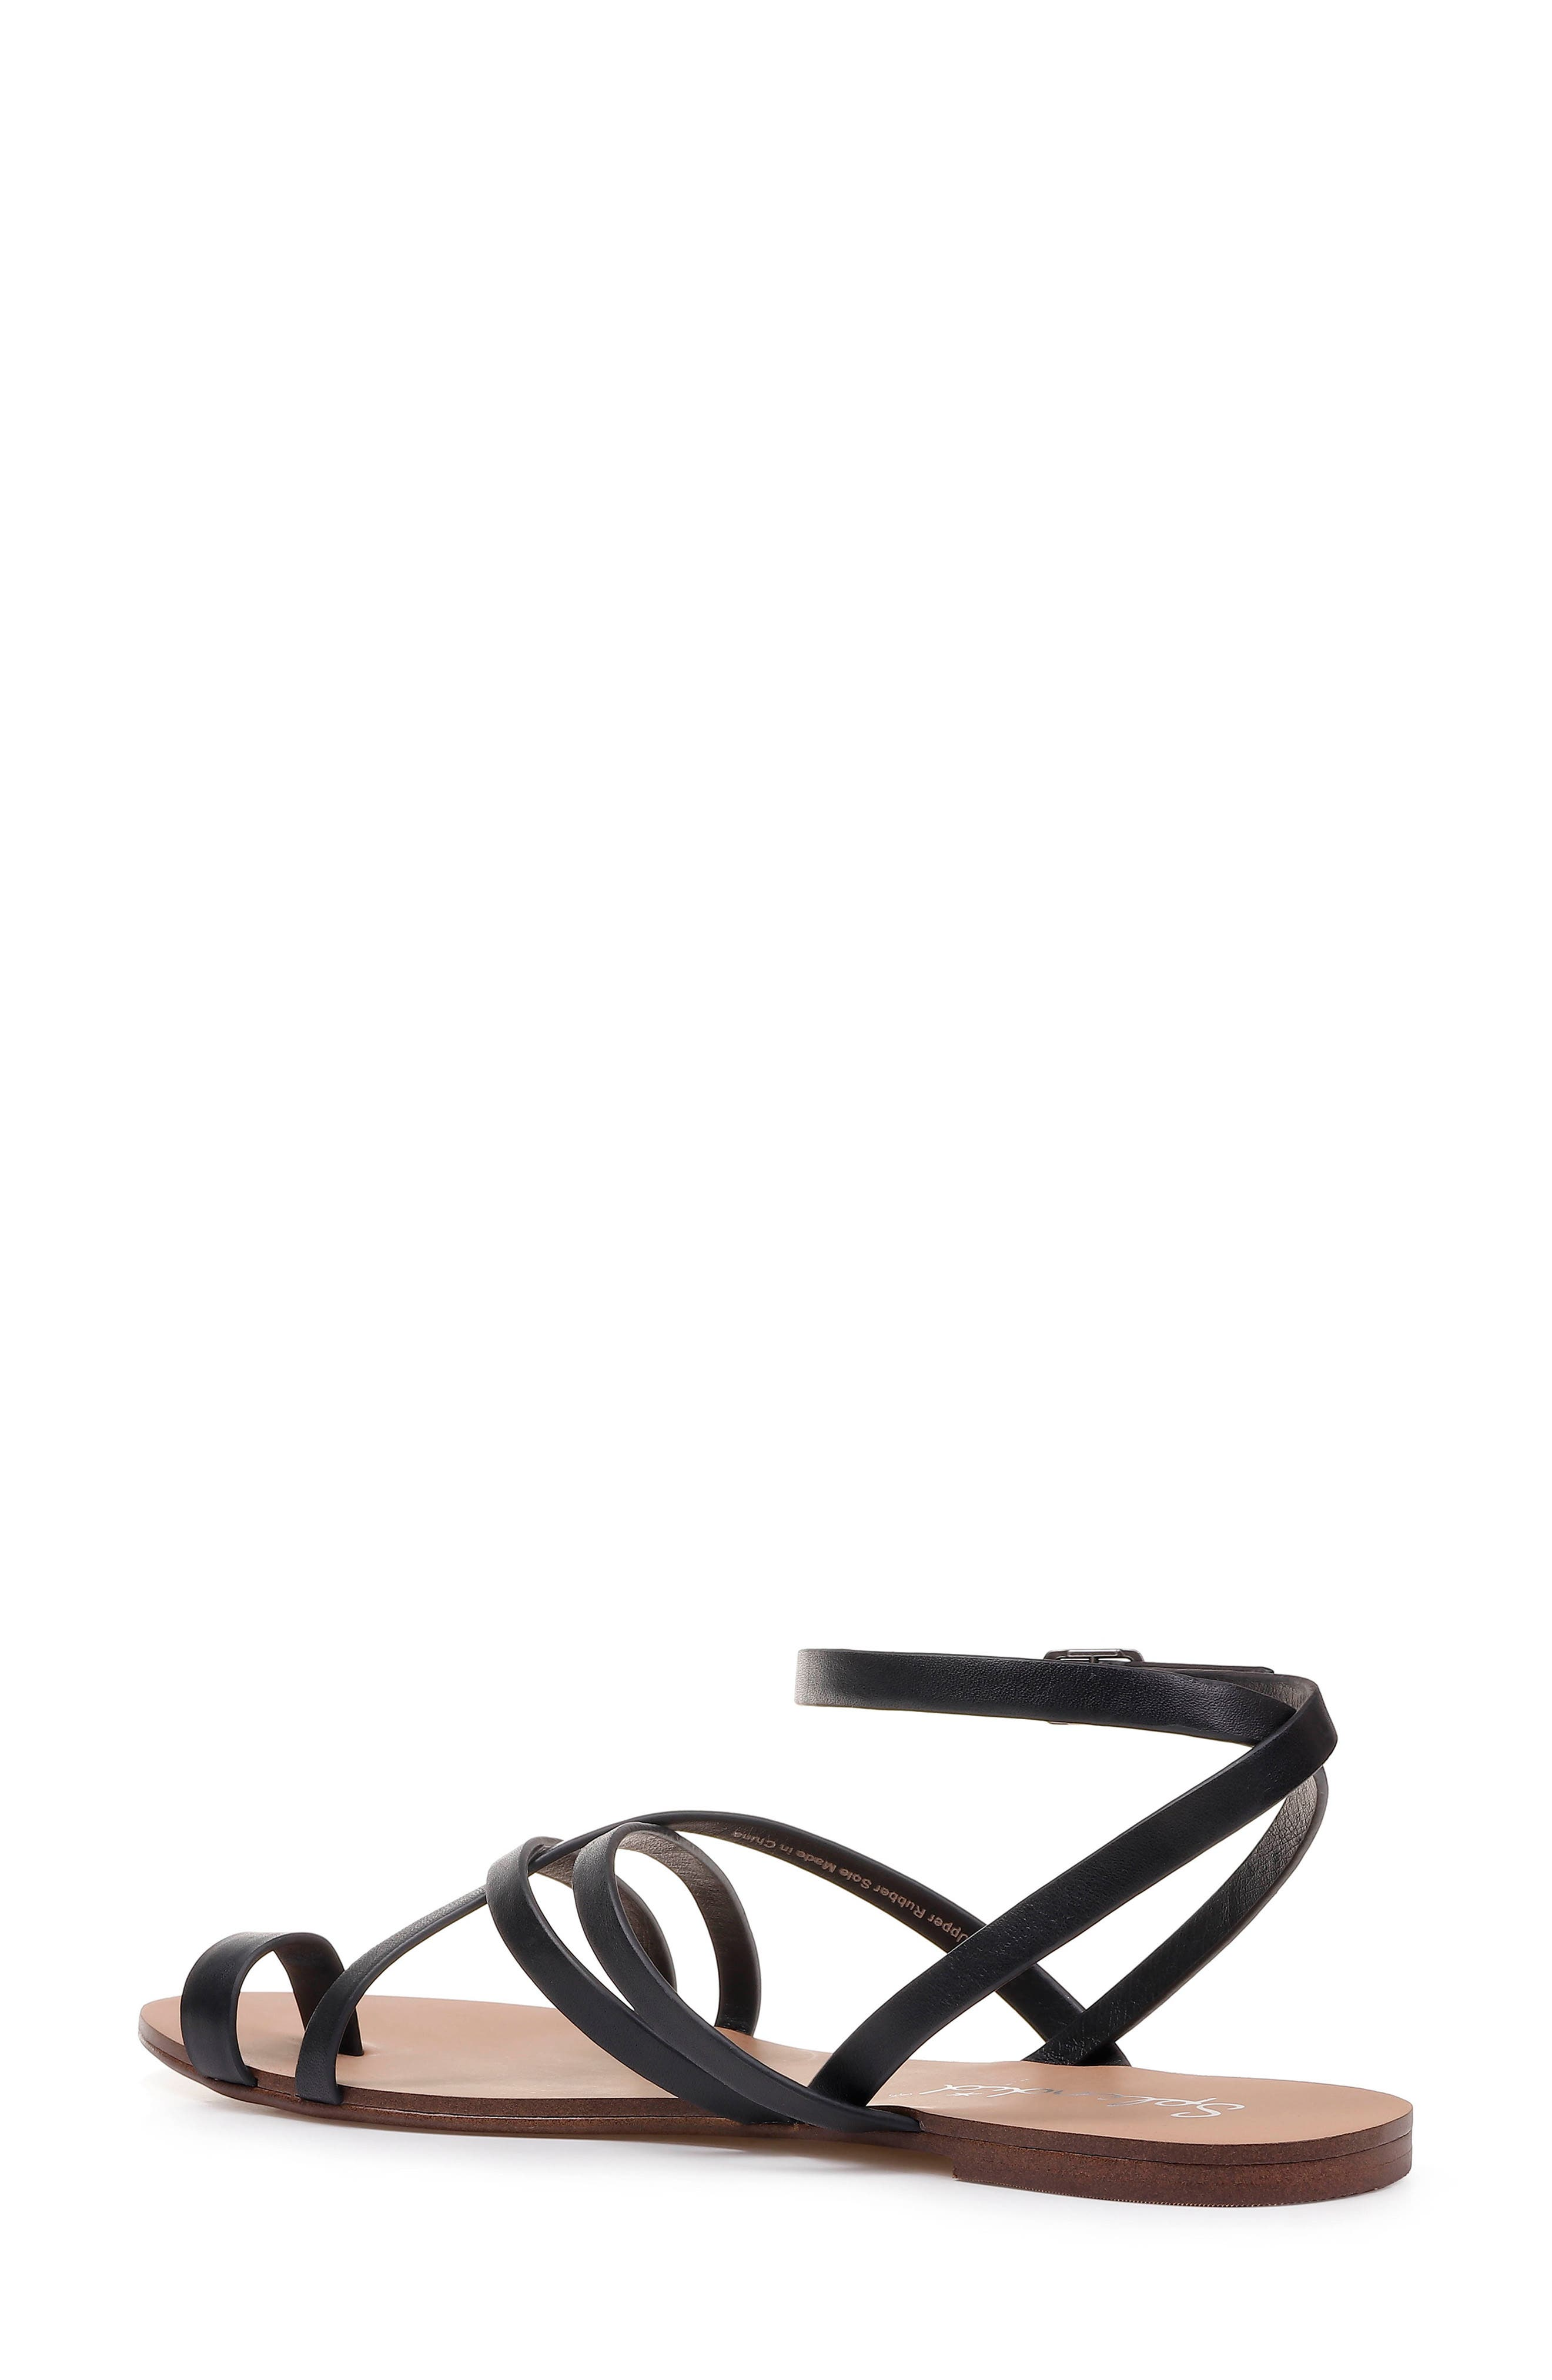 Sully Strappy Toe Loop Sandal,                             Alternate thumbnail 2, color,                             BLACK LEATHER